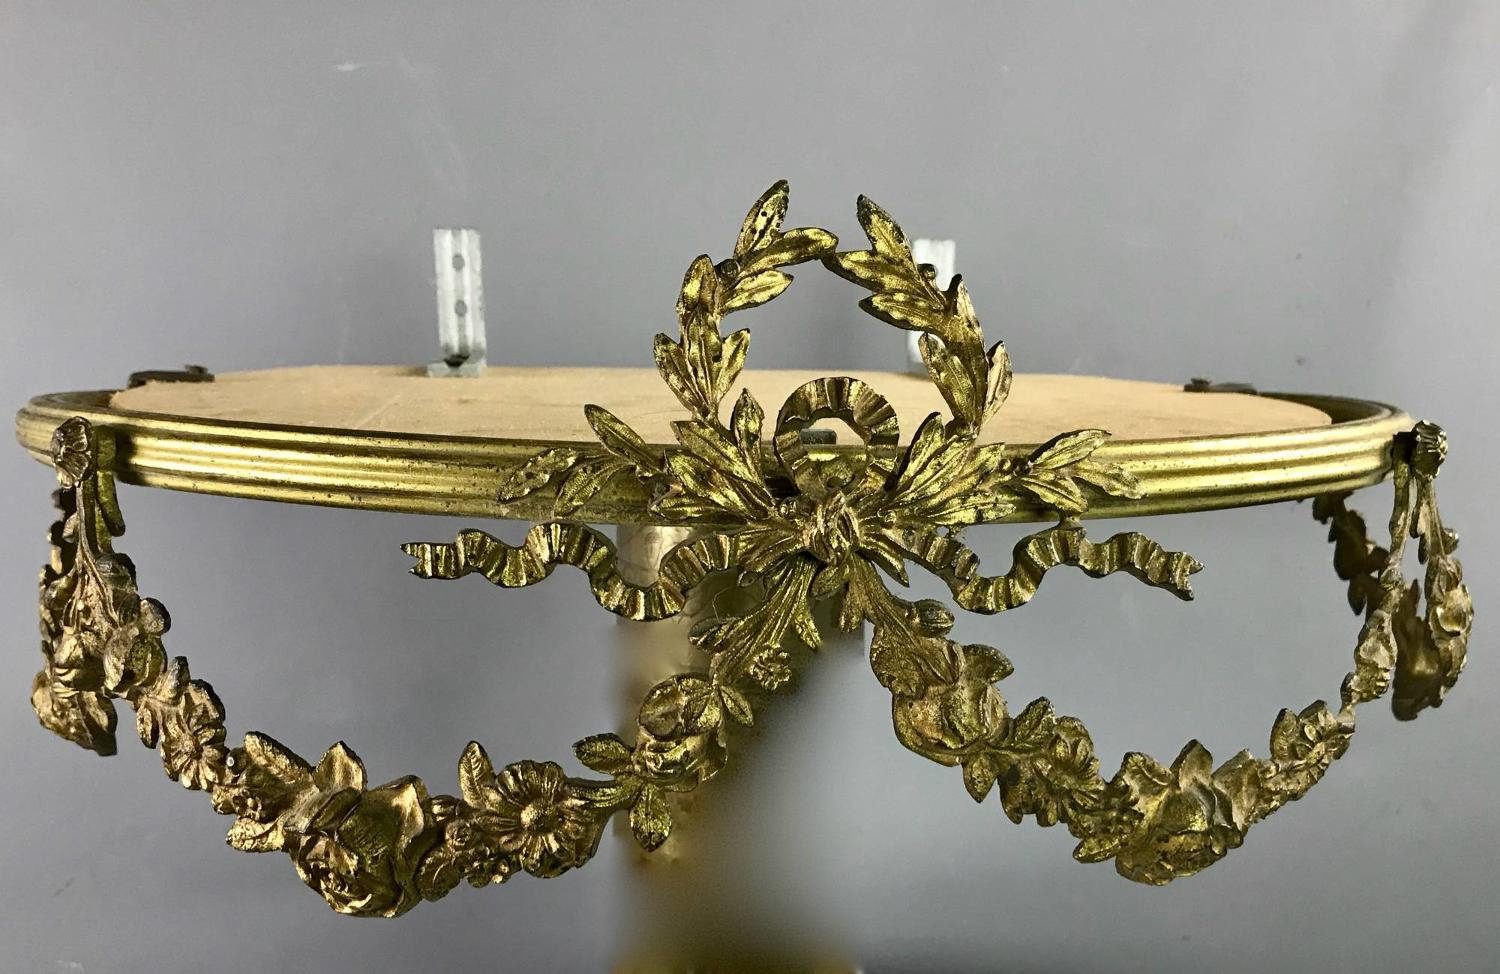 French Gilt Metal Bed Ciel de Lit in Louis XVI Style